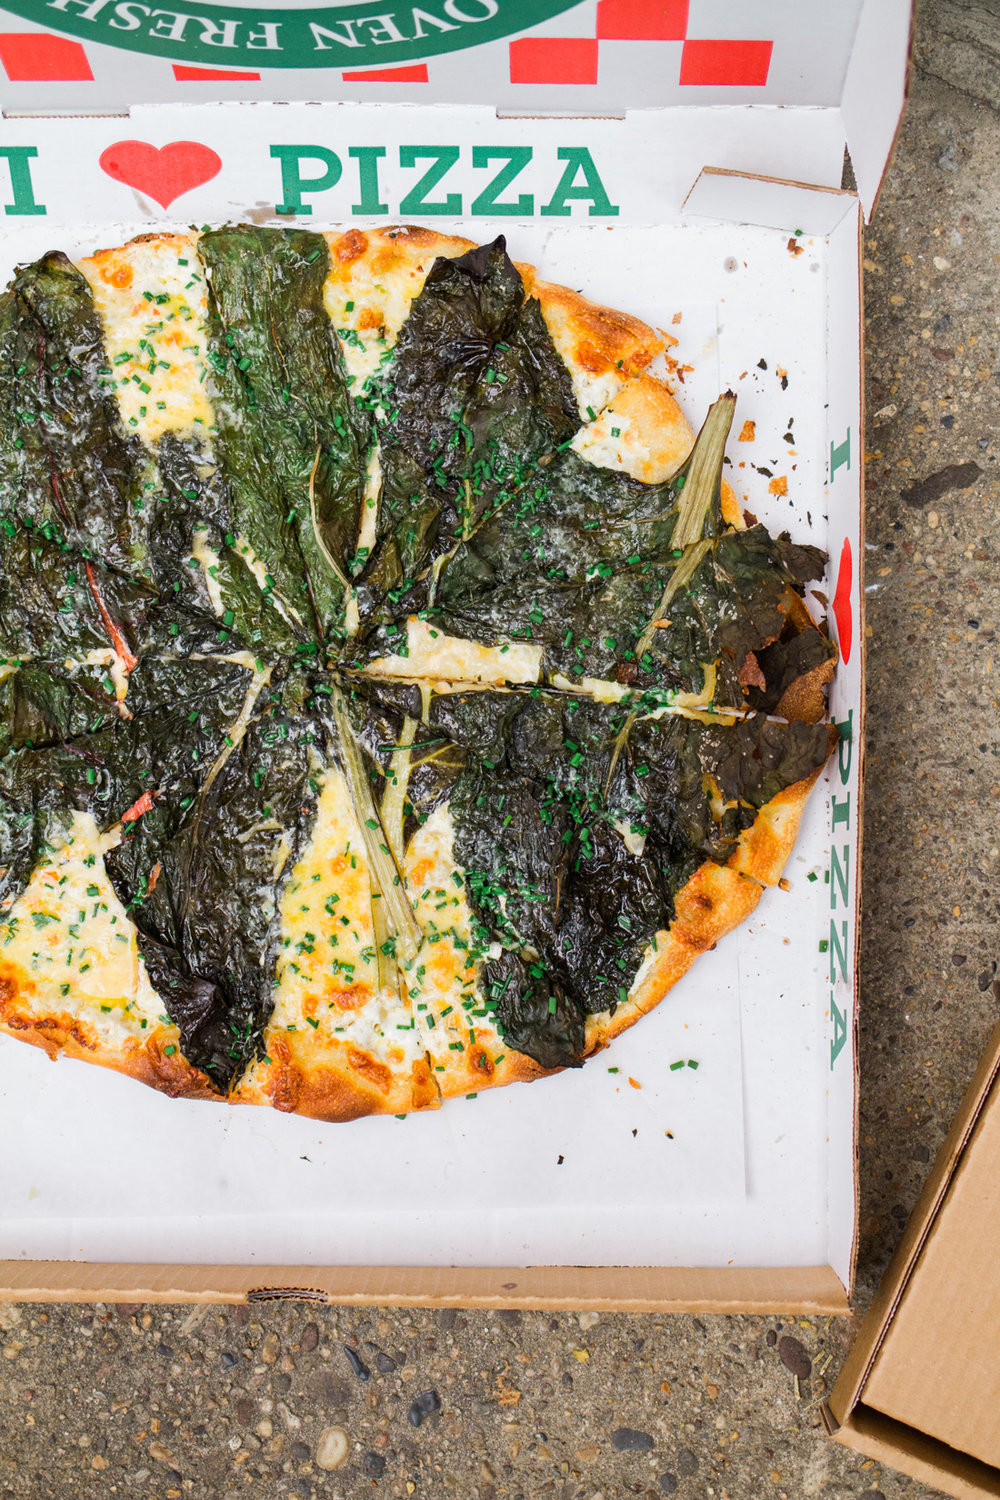 The famous pizza from Pizzeria Beddia in Philly with swiss chard all over it